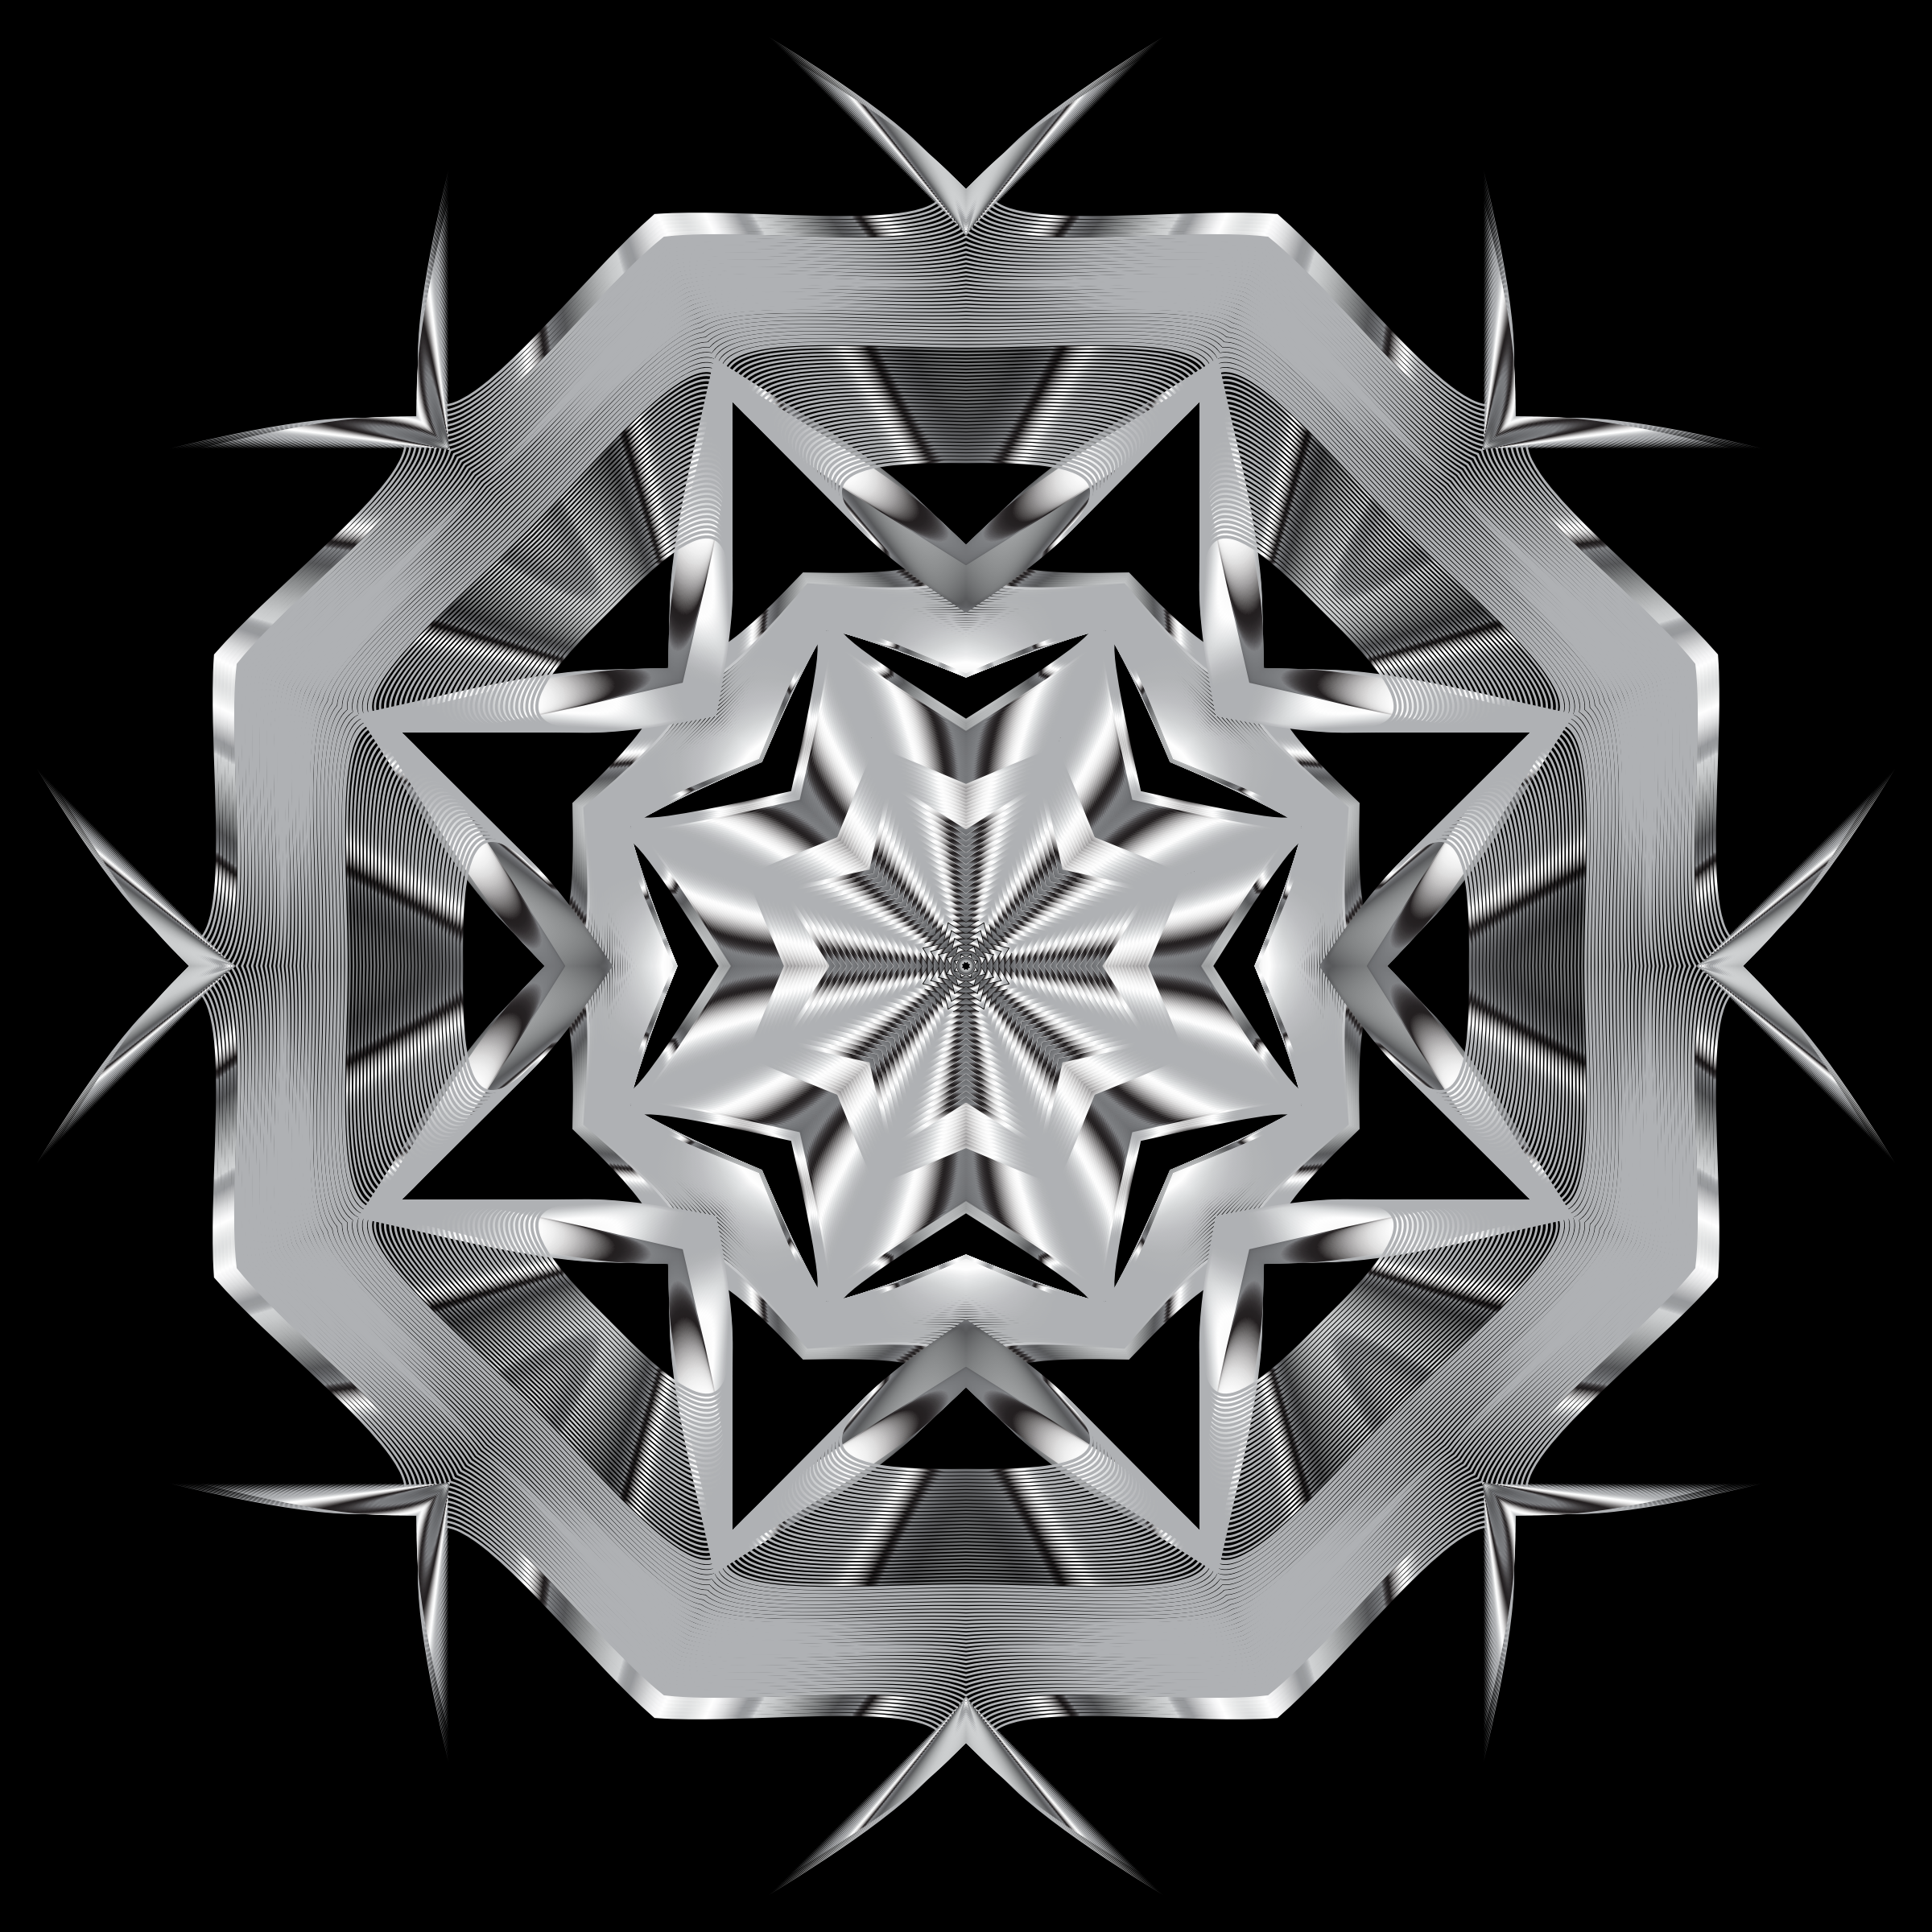 Prismatic Star Line Art 5 Variation 2 by GDJ